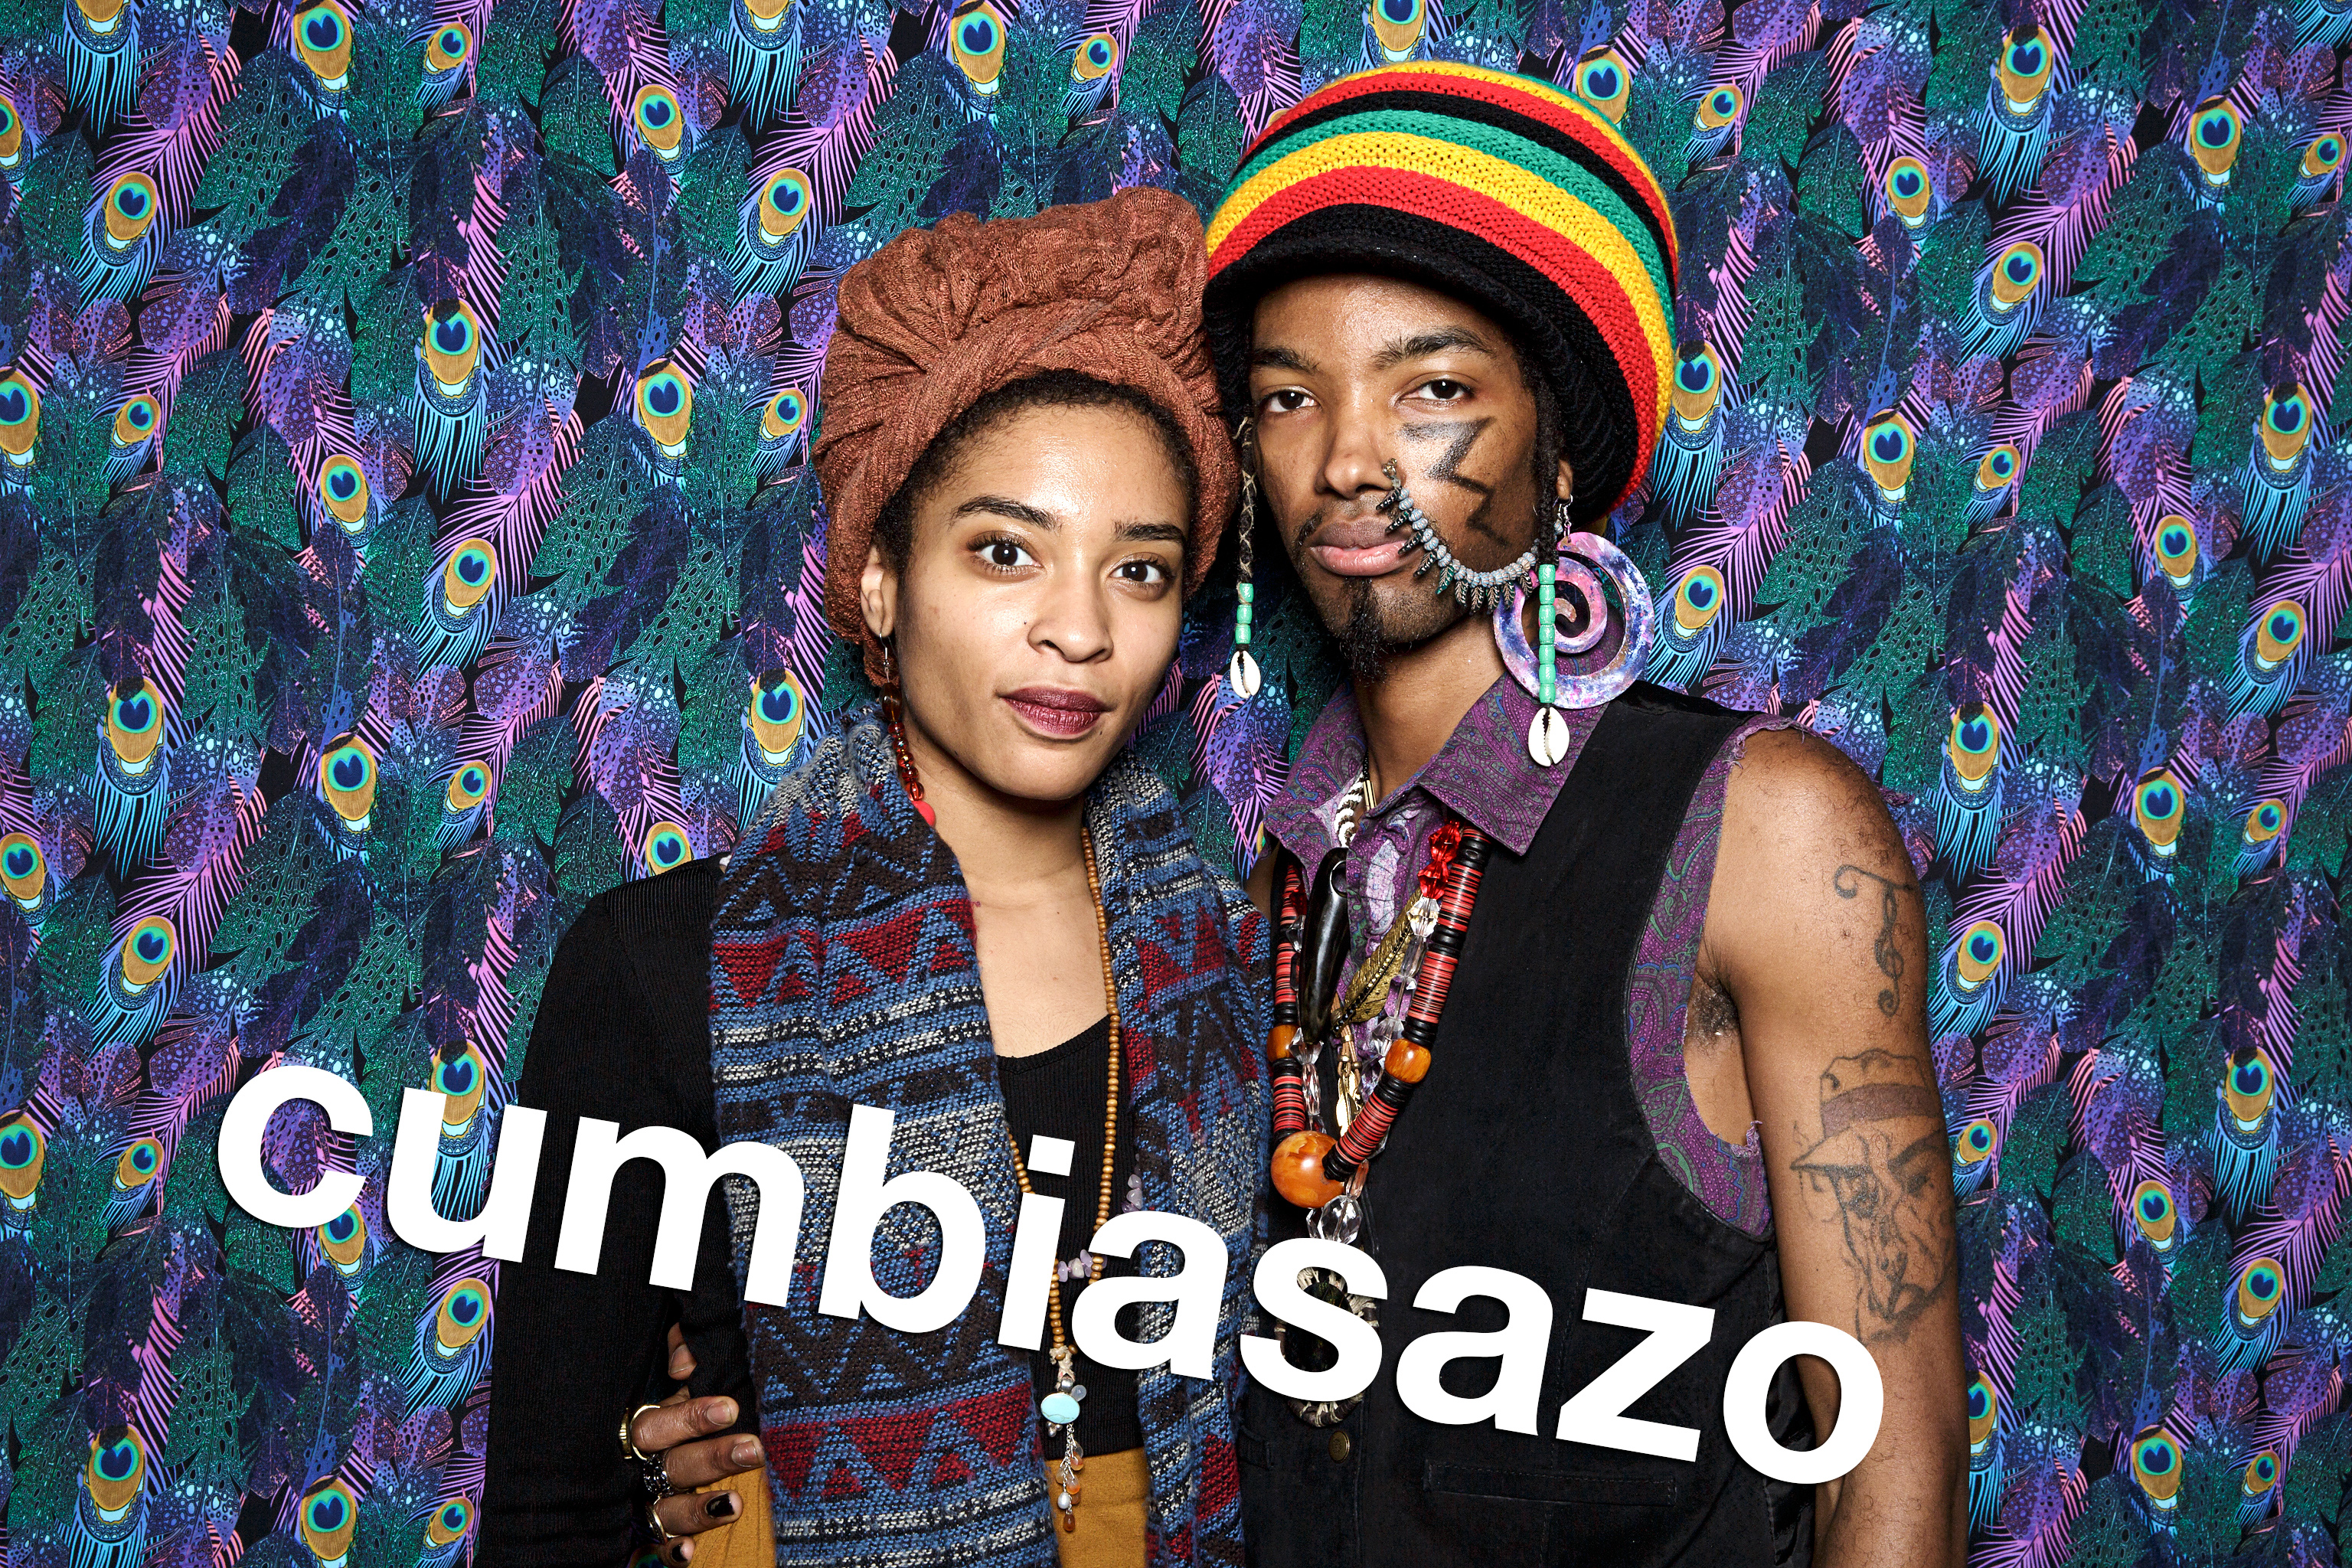 photo booth portraits from cumbiasazo at double door, november 2016